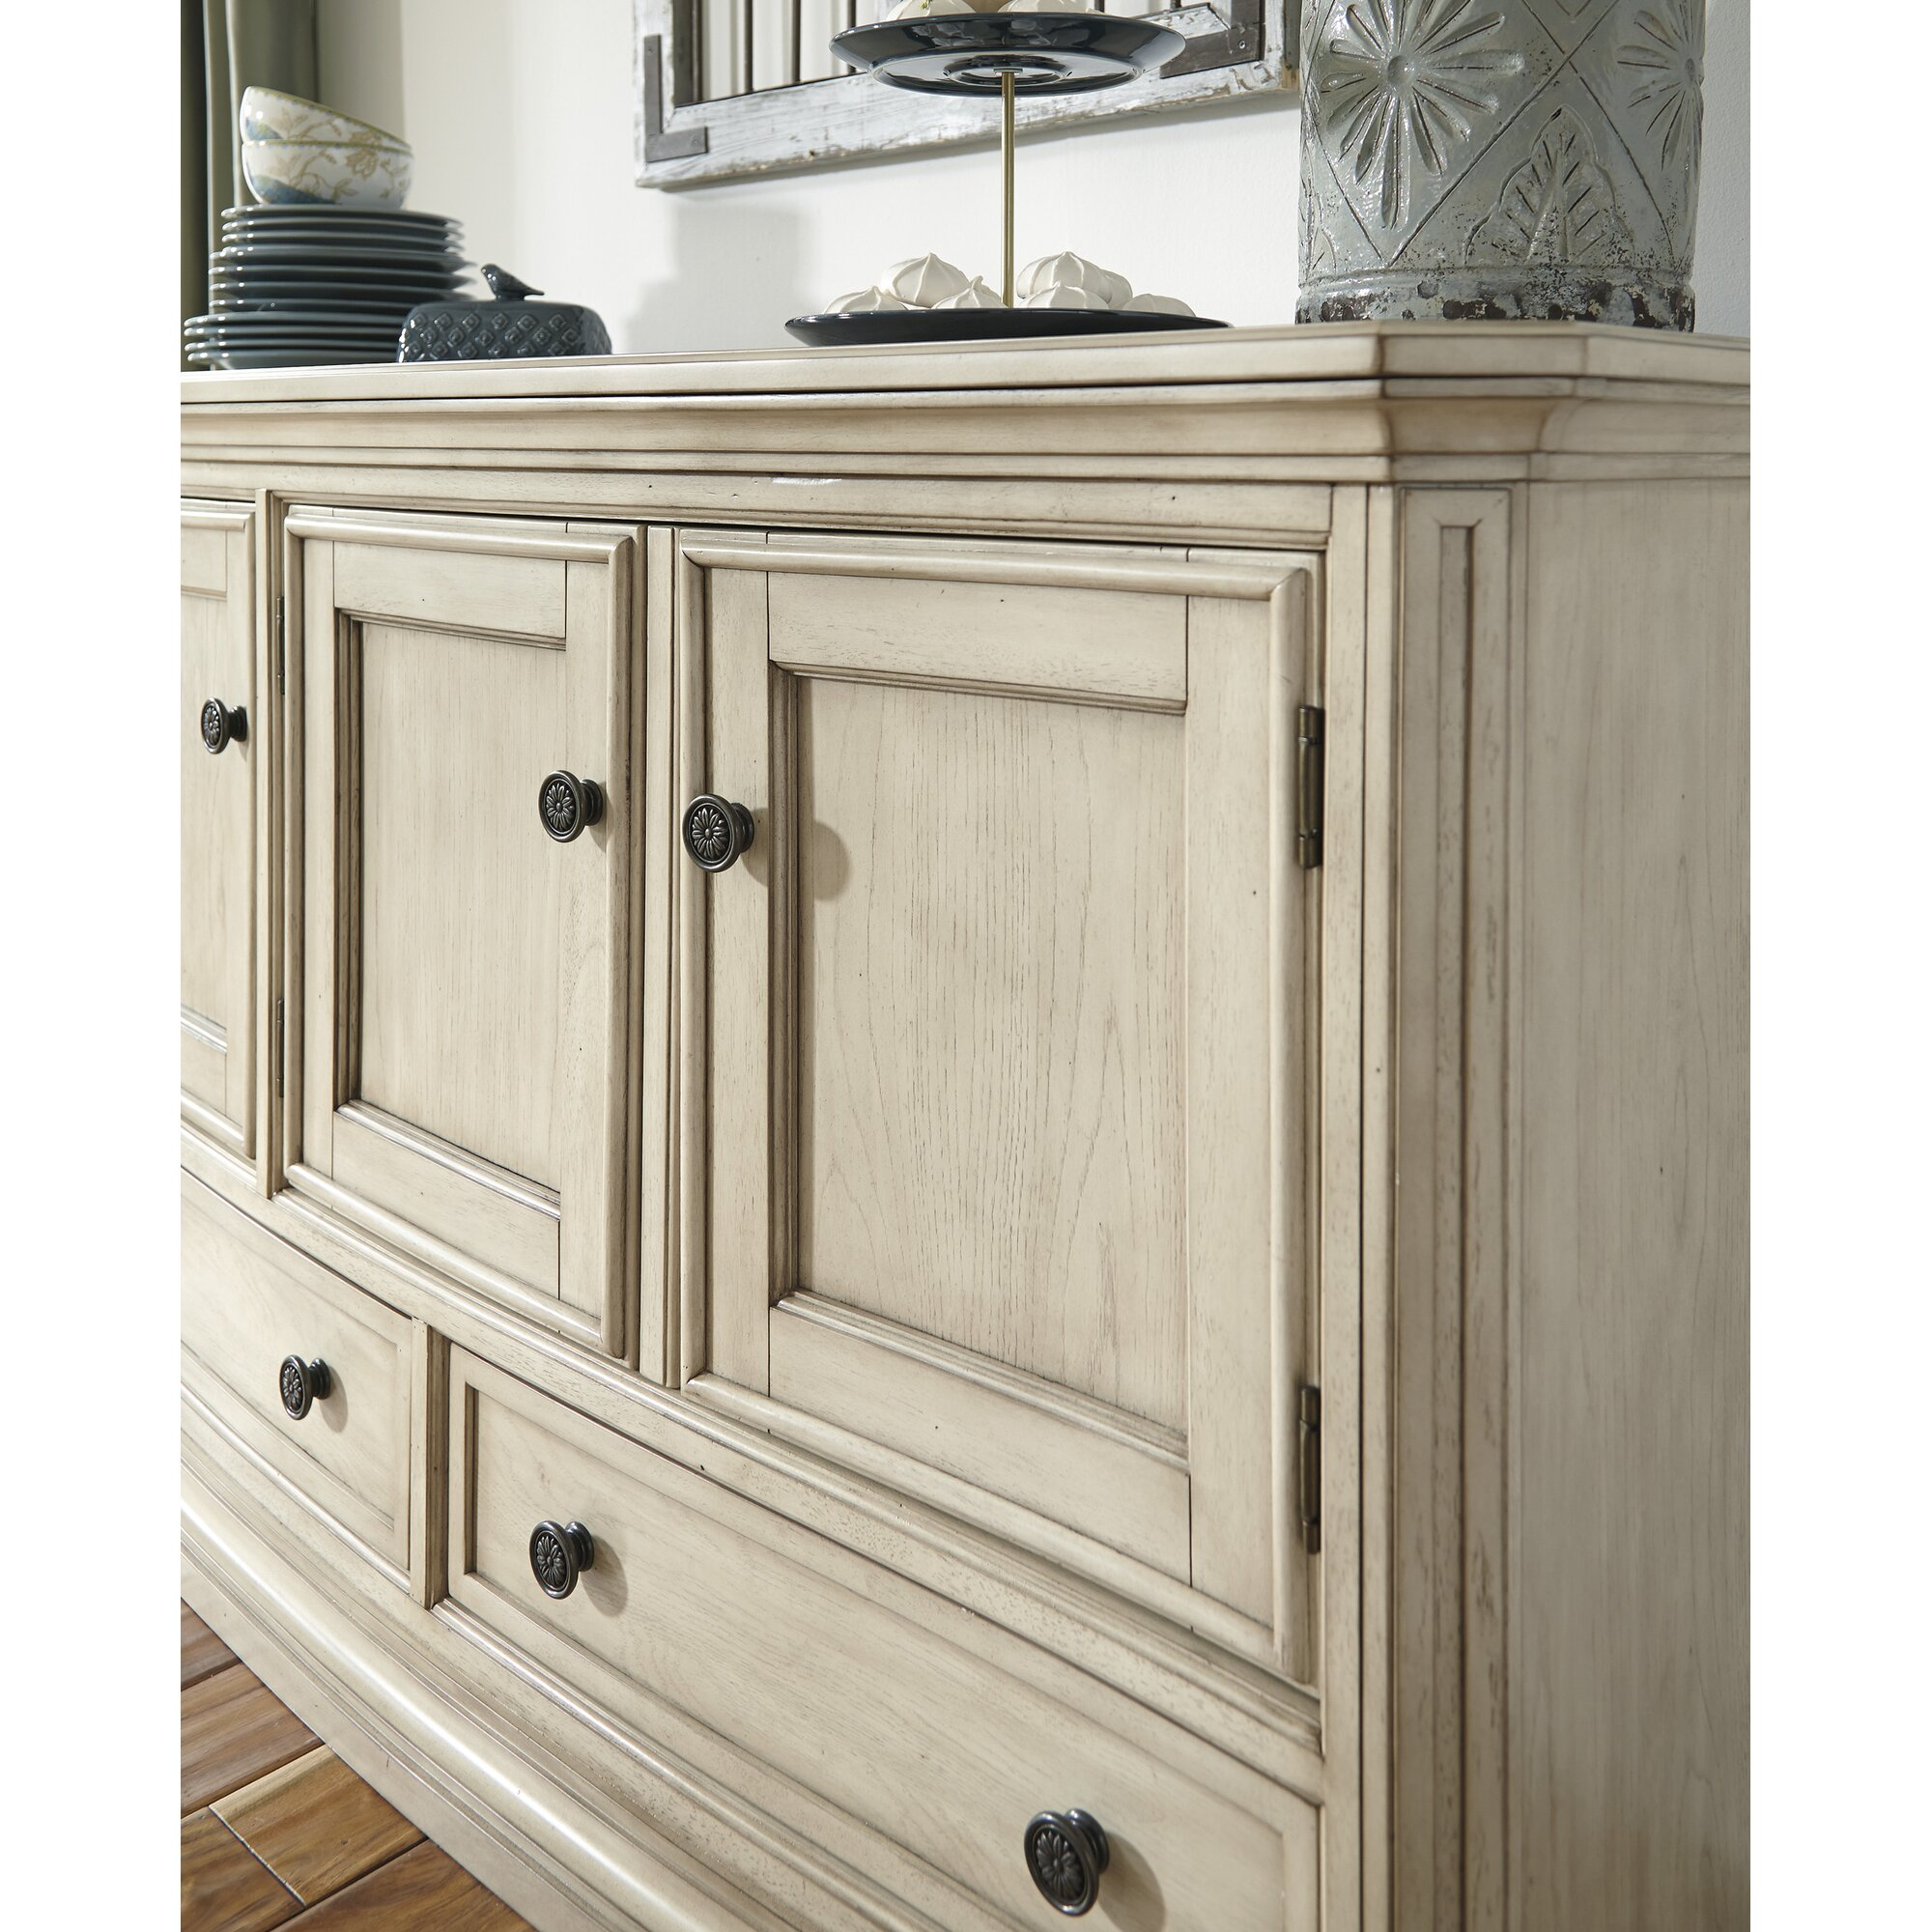 Signature Design by Ashley Dining Room Sideboard & Reviews | Wayfair